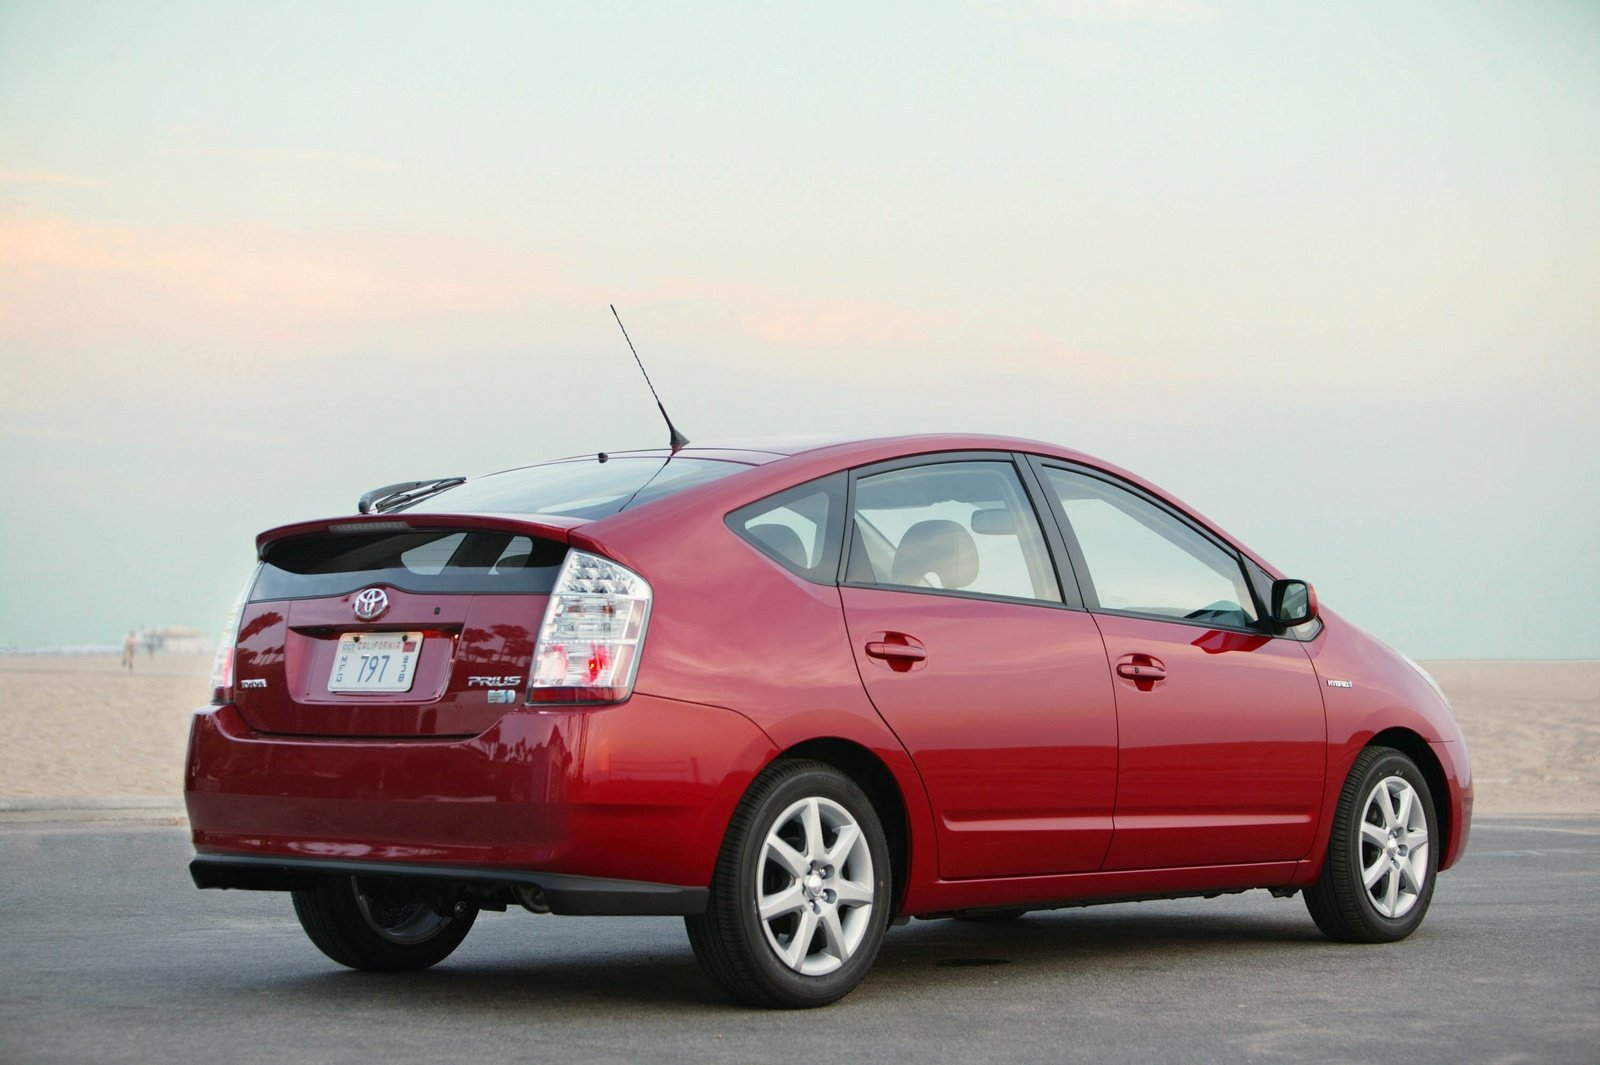 2007 toyota prius touring edition picture 94534 car review top speed. Black Bedroom Furniture Sets. Home Design Ideas